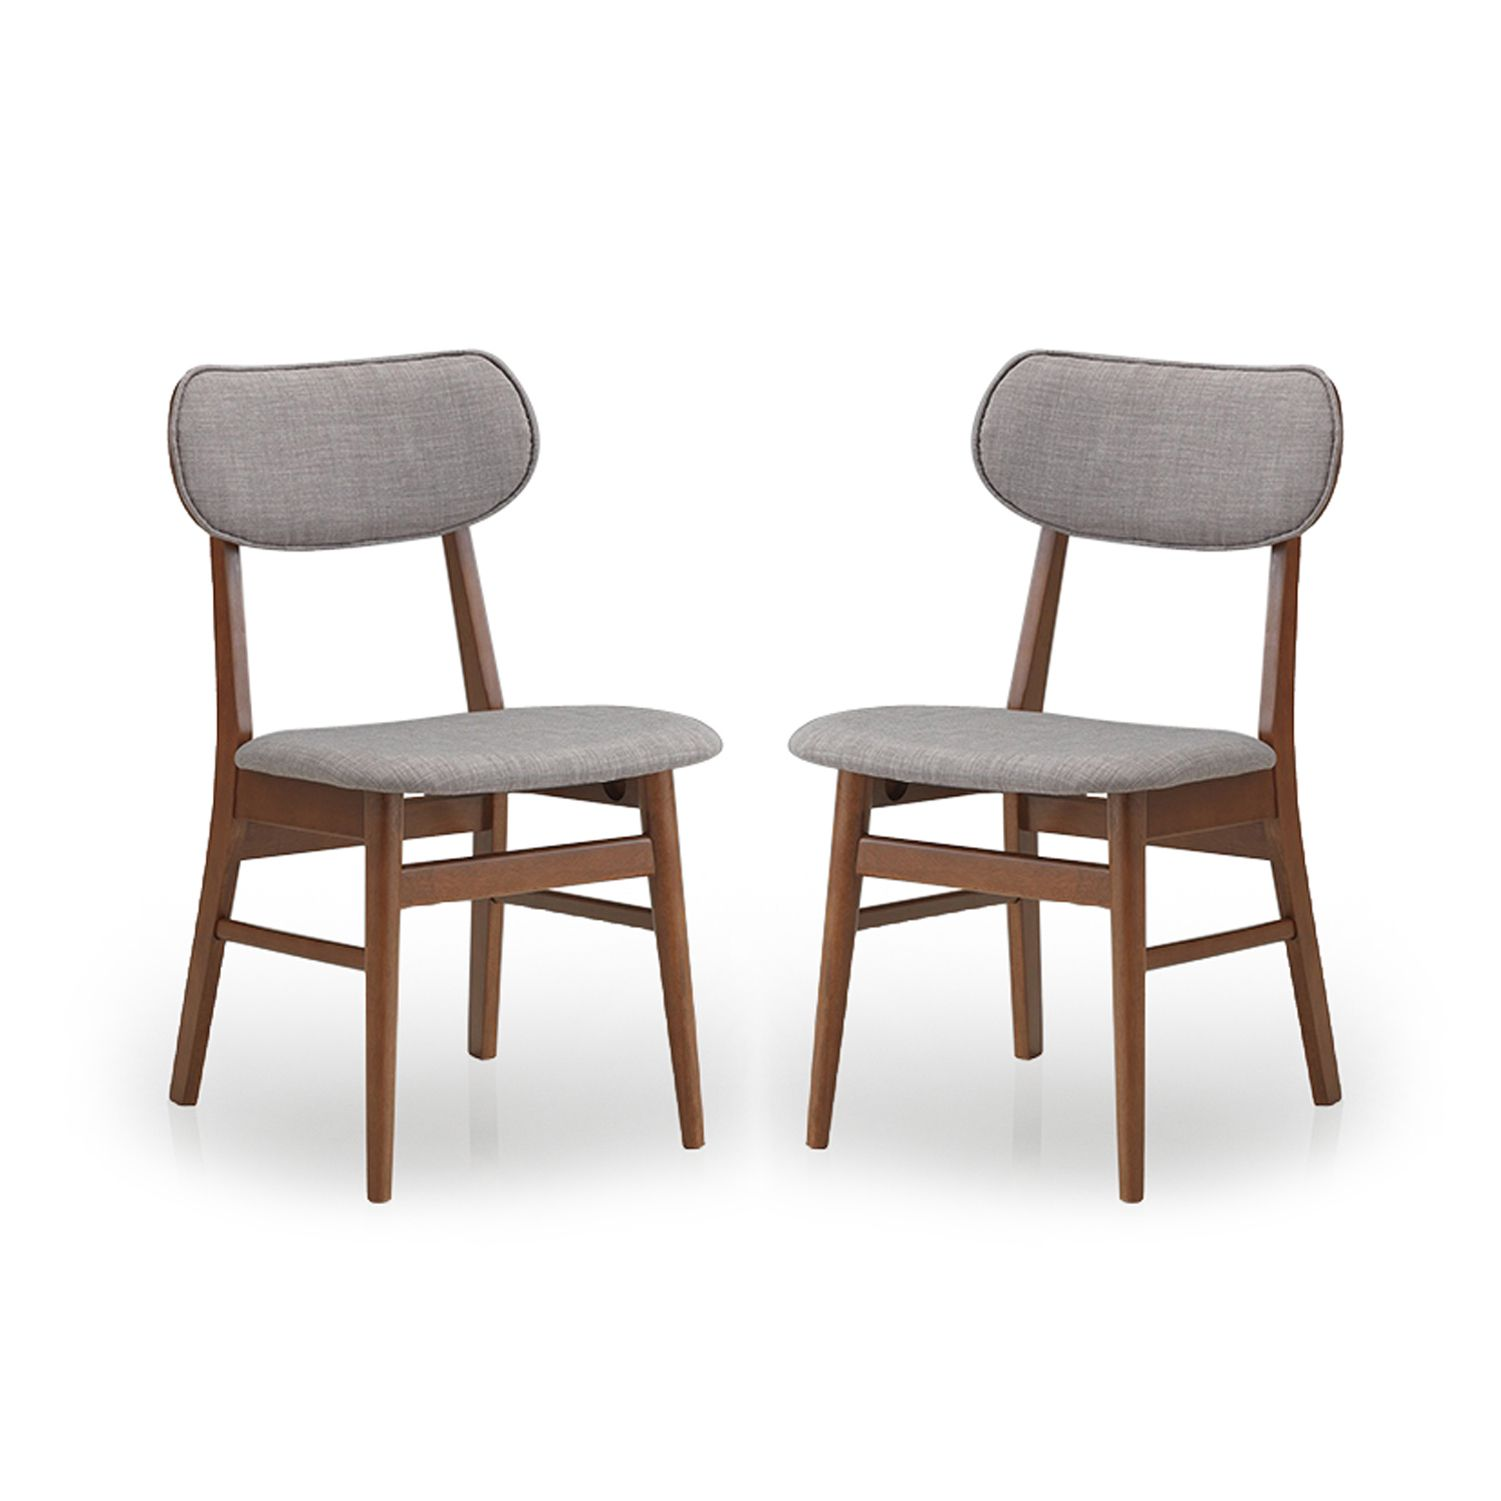 Dining Chairs Deals: Set Of 2 Sacramento Mid-Century Solid Wood Dining Chairs